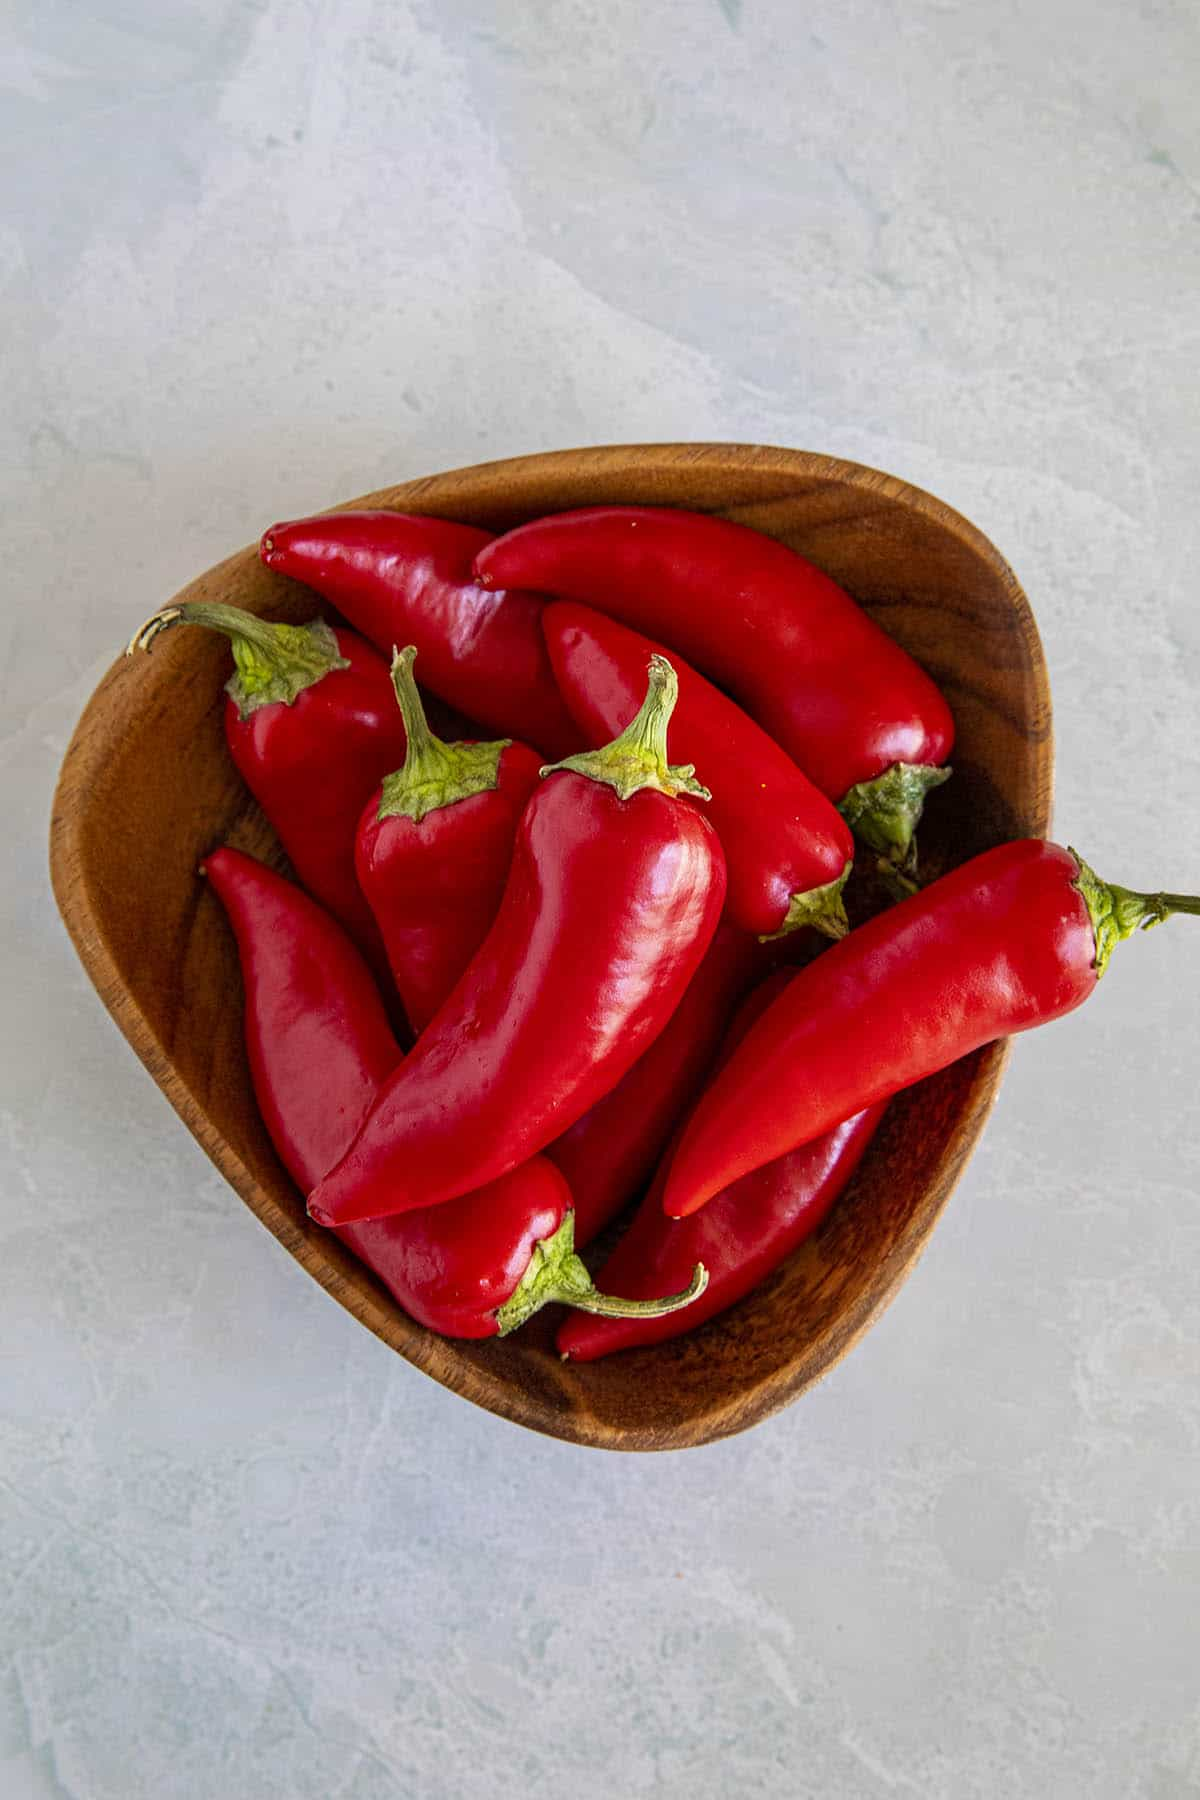 A bowl of Fresno Peppers